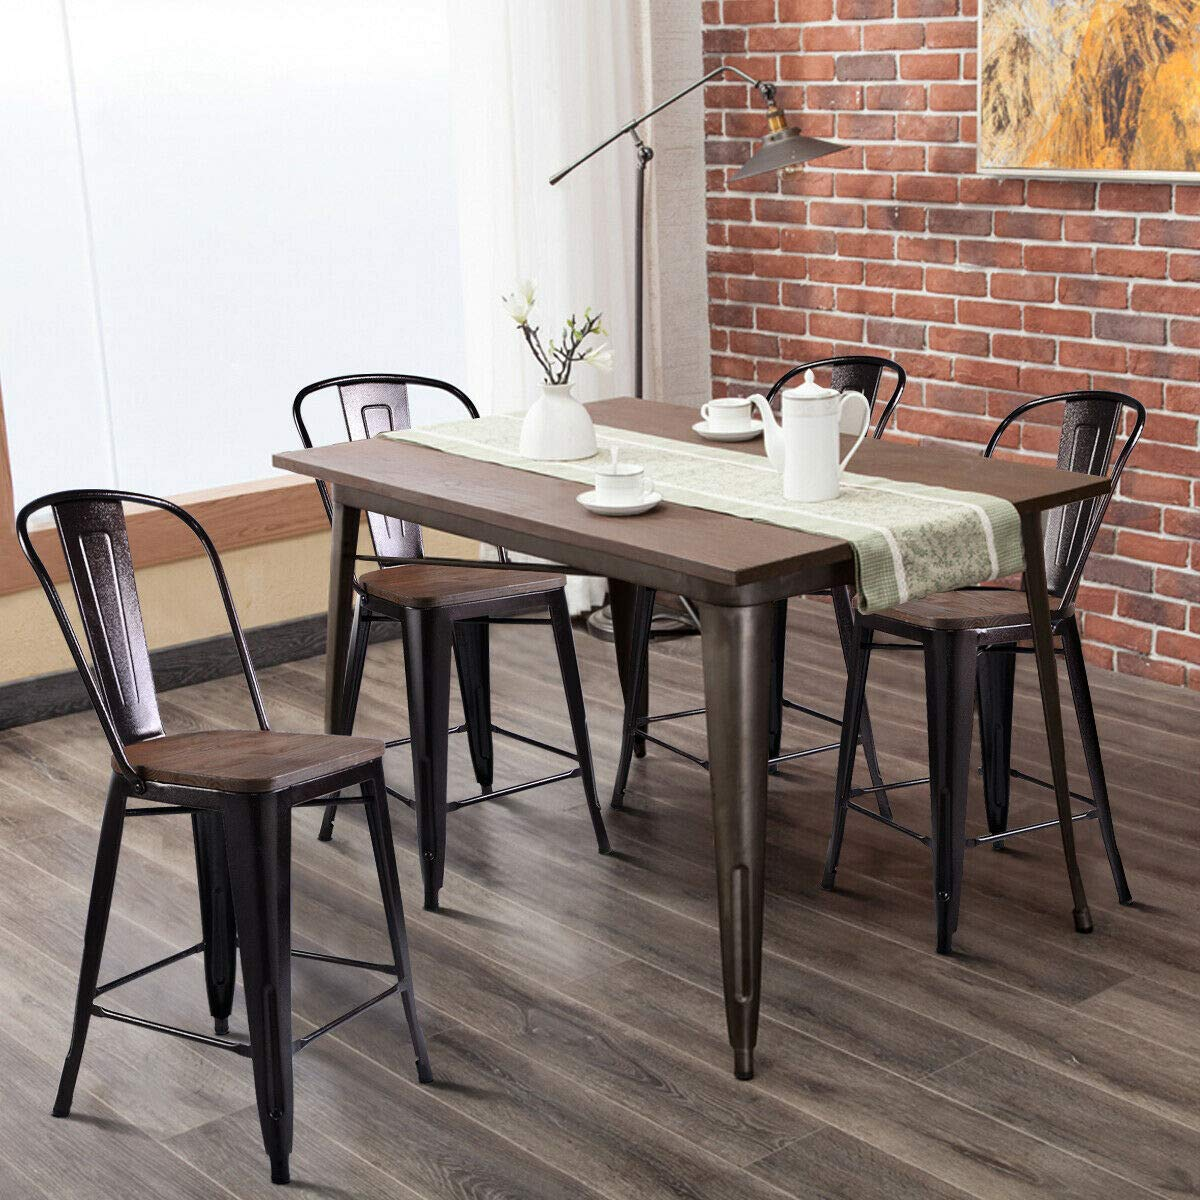 COSTWAY Tolix Style Dining Stools with Wood Seat and Backrest, Industrial Metal Counter Height Stool, Modern Kitchen Dining Bar Chairs Rustic, Copper Height 24 4PC